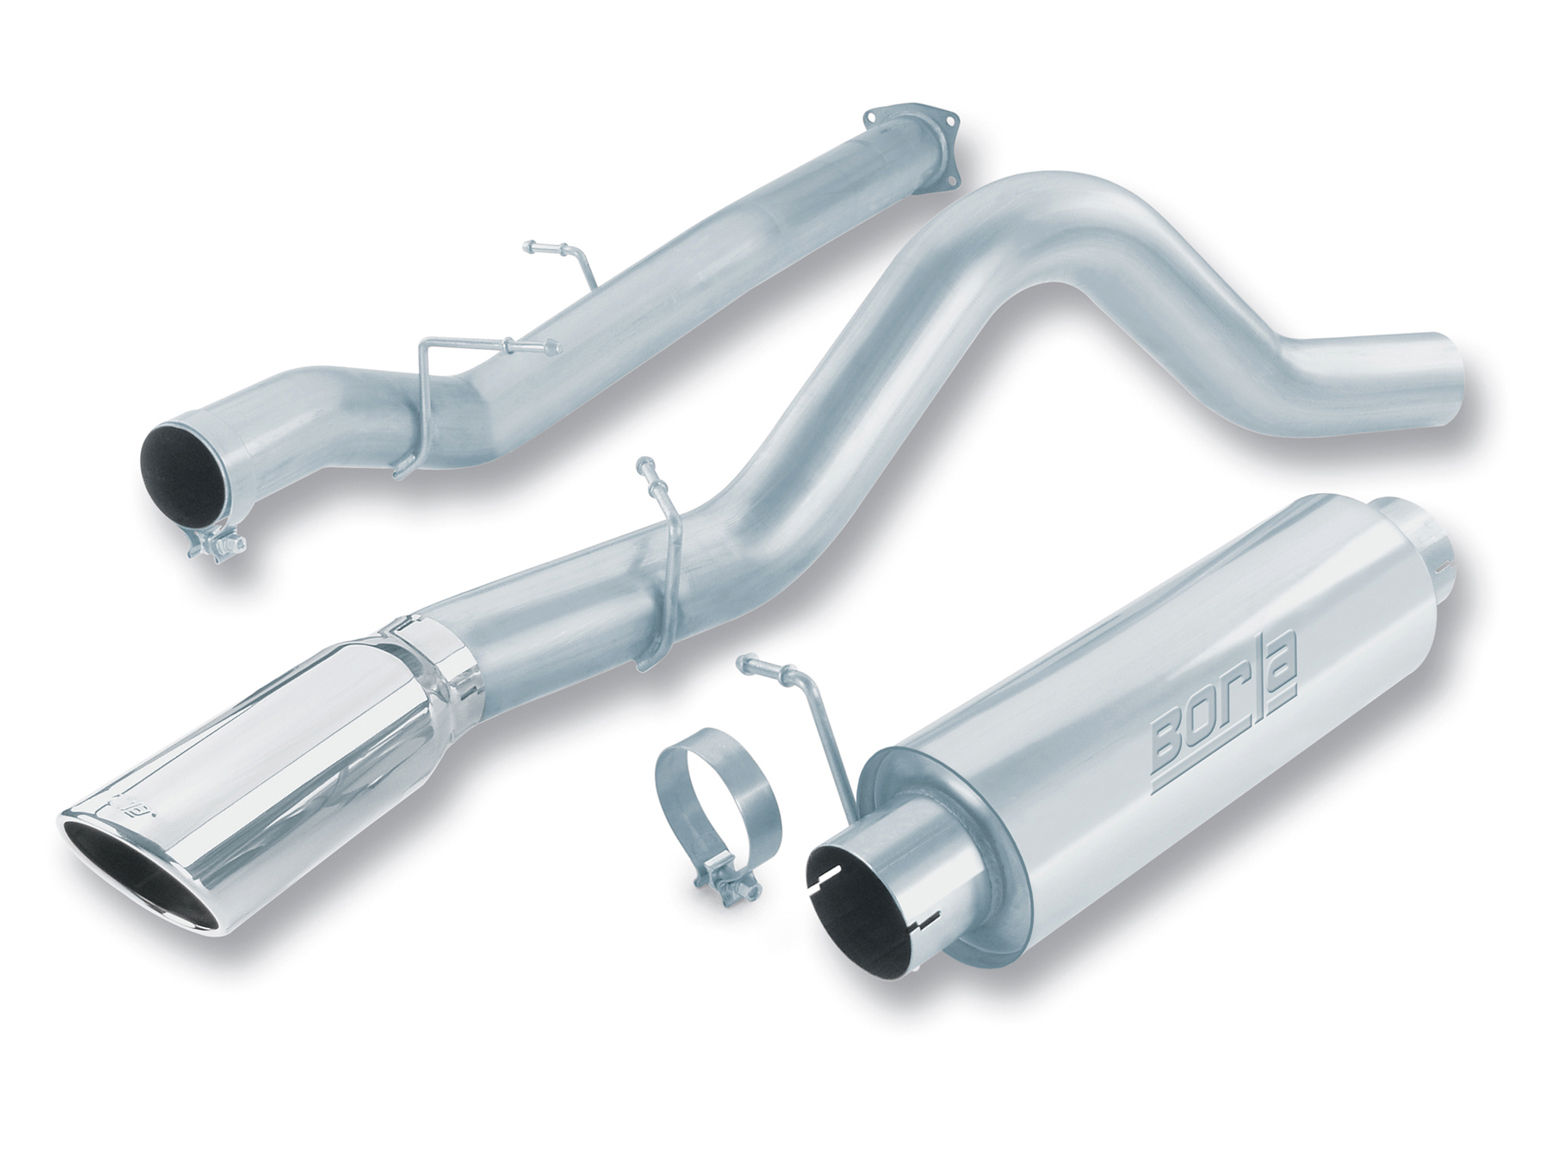 "Gmc Sierra Diesel 2500/3500 2006-2007 Borla 4"" Cat-Back Exhaust System - Single Round Rolled Angle-Cut Single Square Angle-Cut Phantom"" Long X Single Round Rolled Angle-Cut Phantom"" Dia"